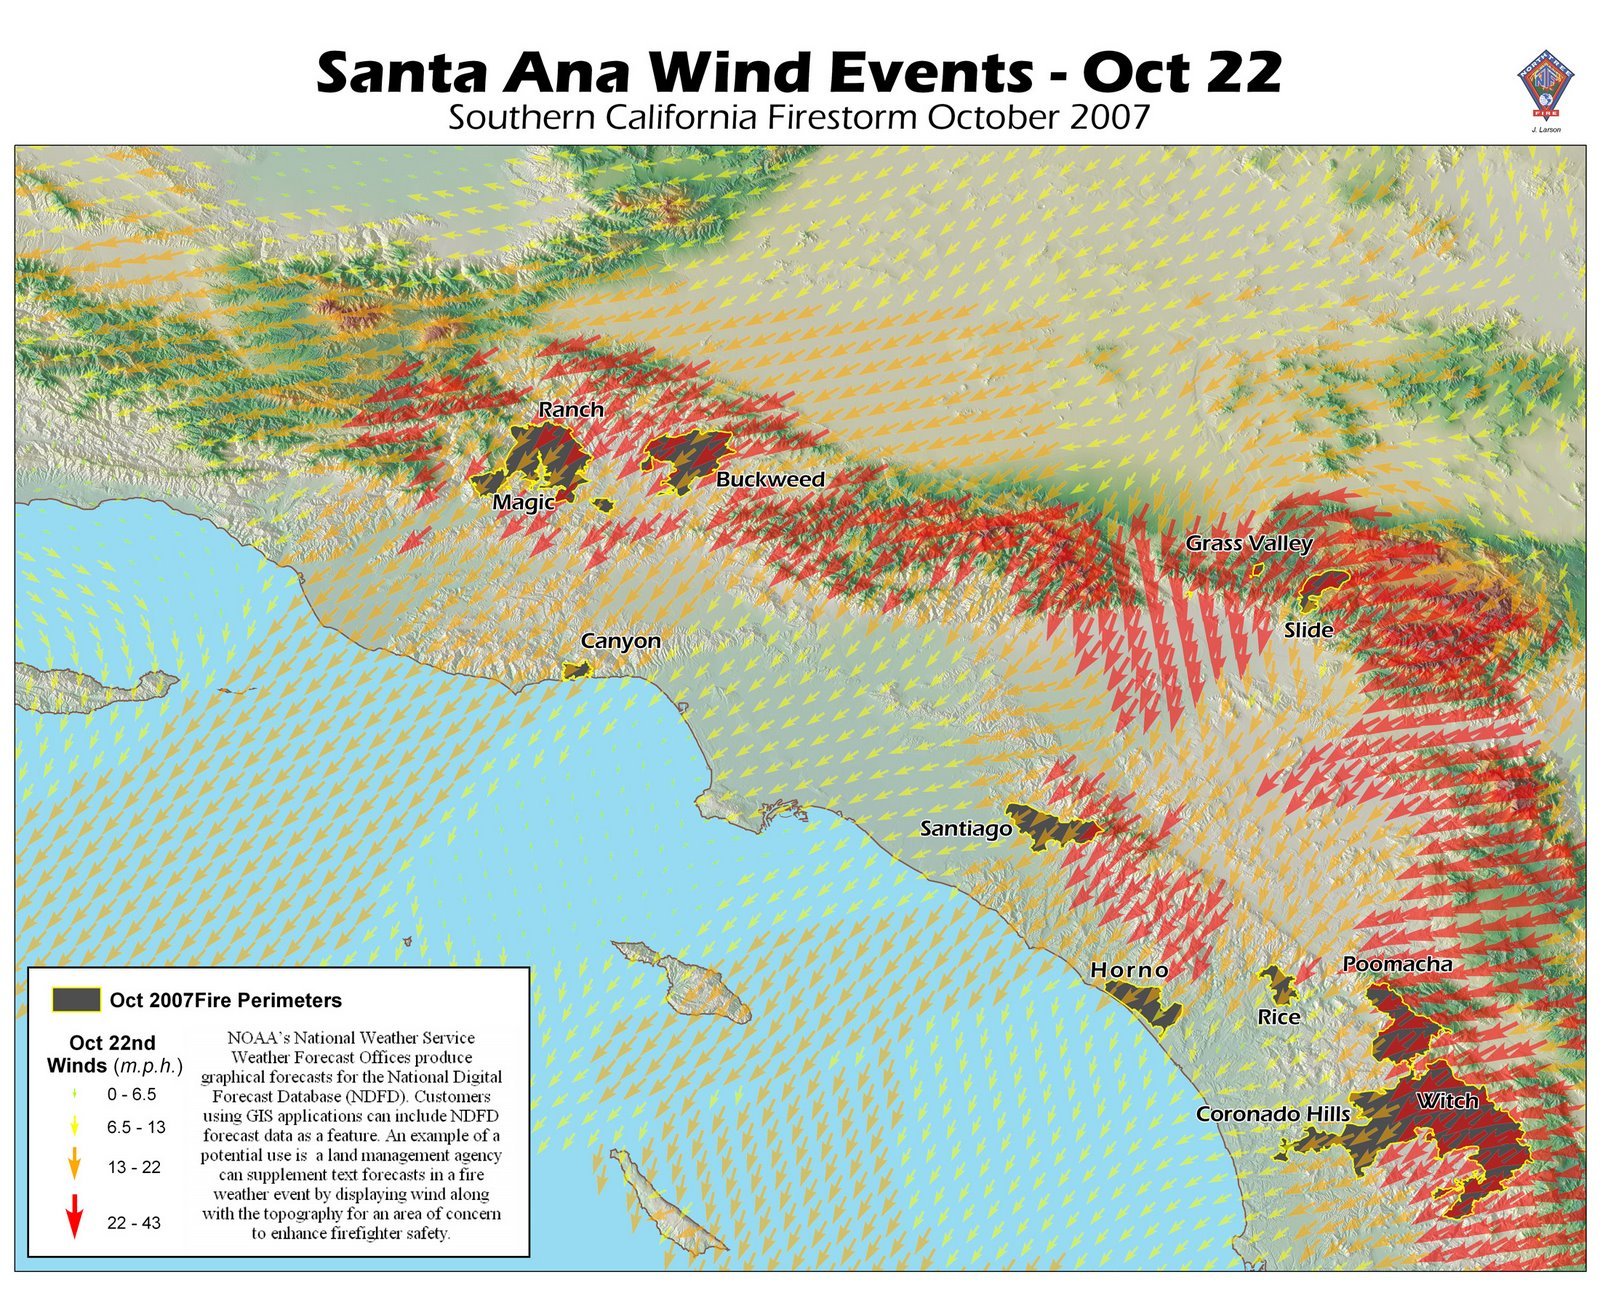 So Cal Fire Map Santa Ana Winds on October 22 Firefighter Blog